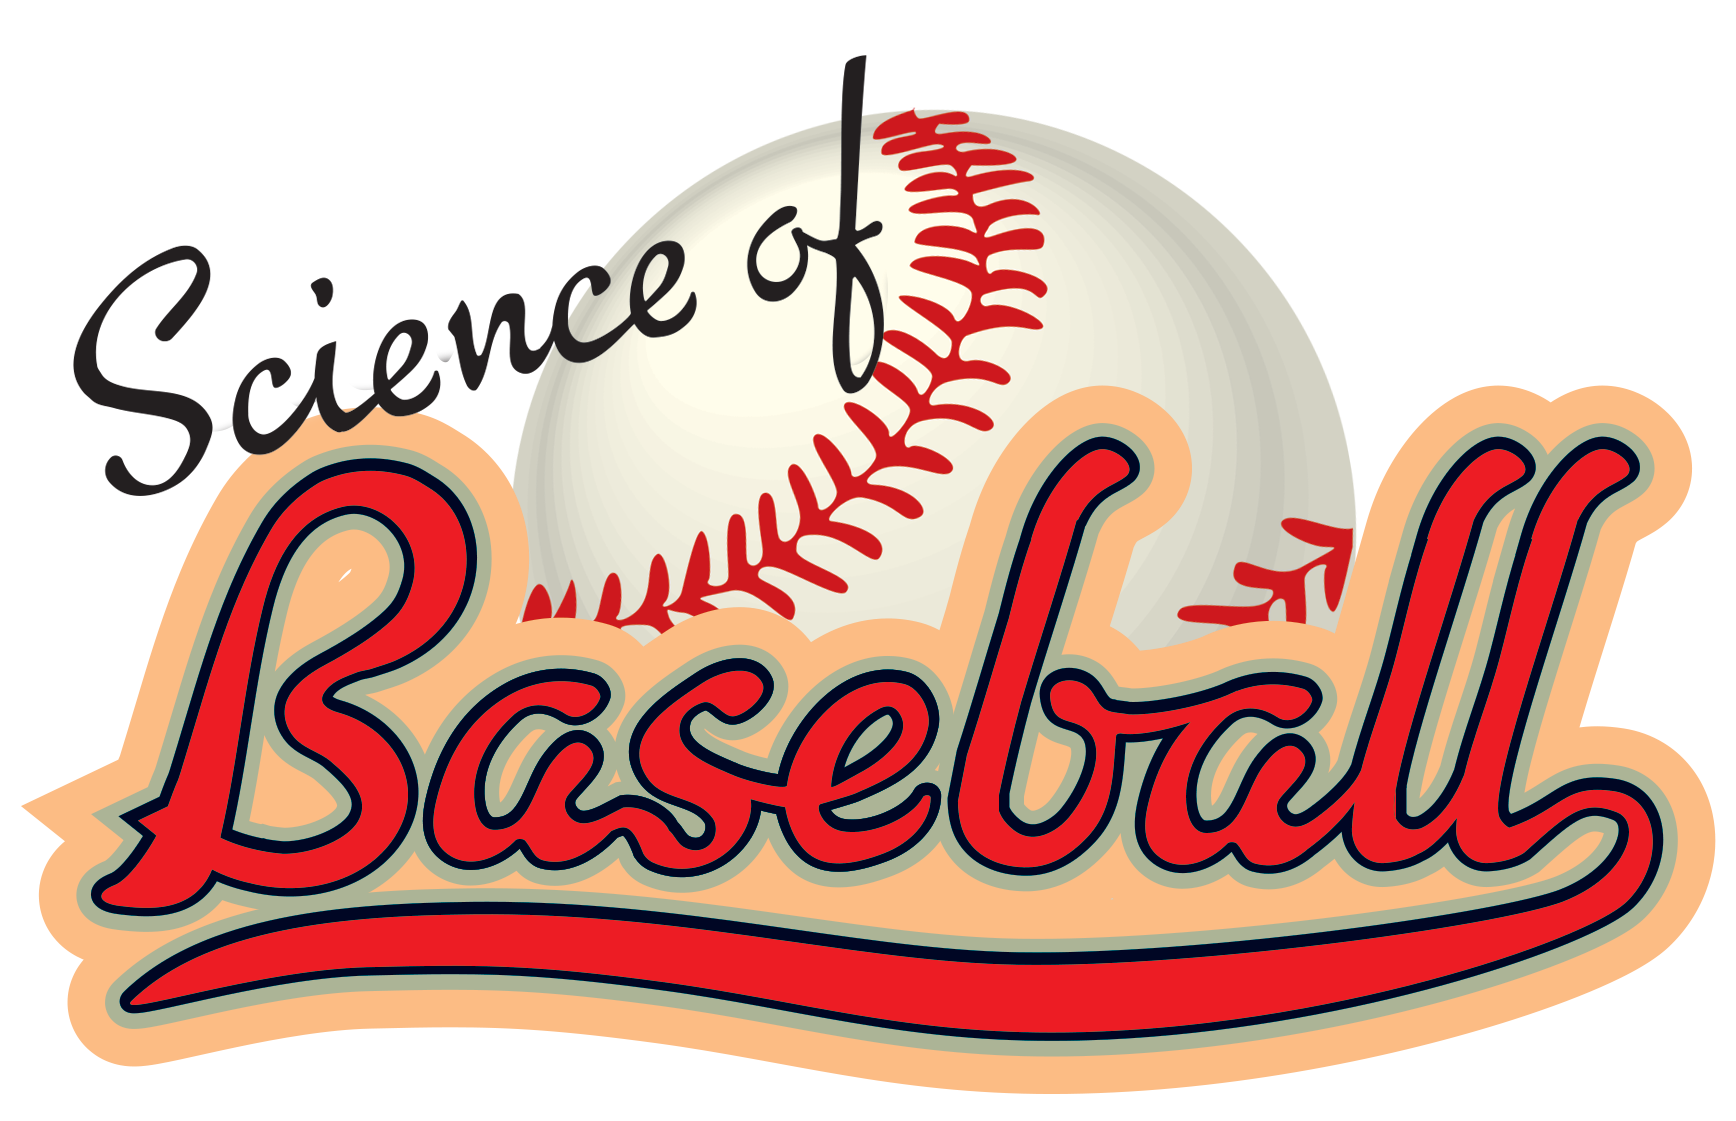 Scienceofbaseball logo png science. Mittens clipart baseball